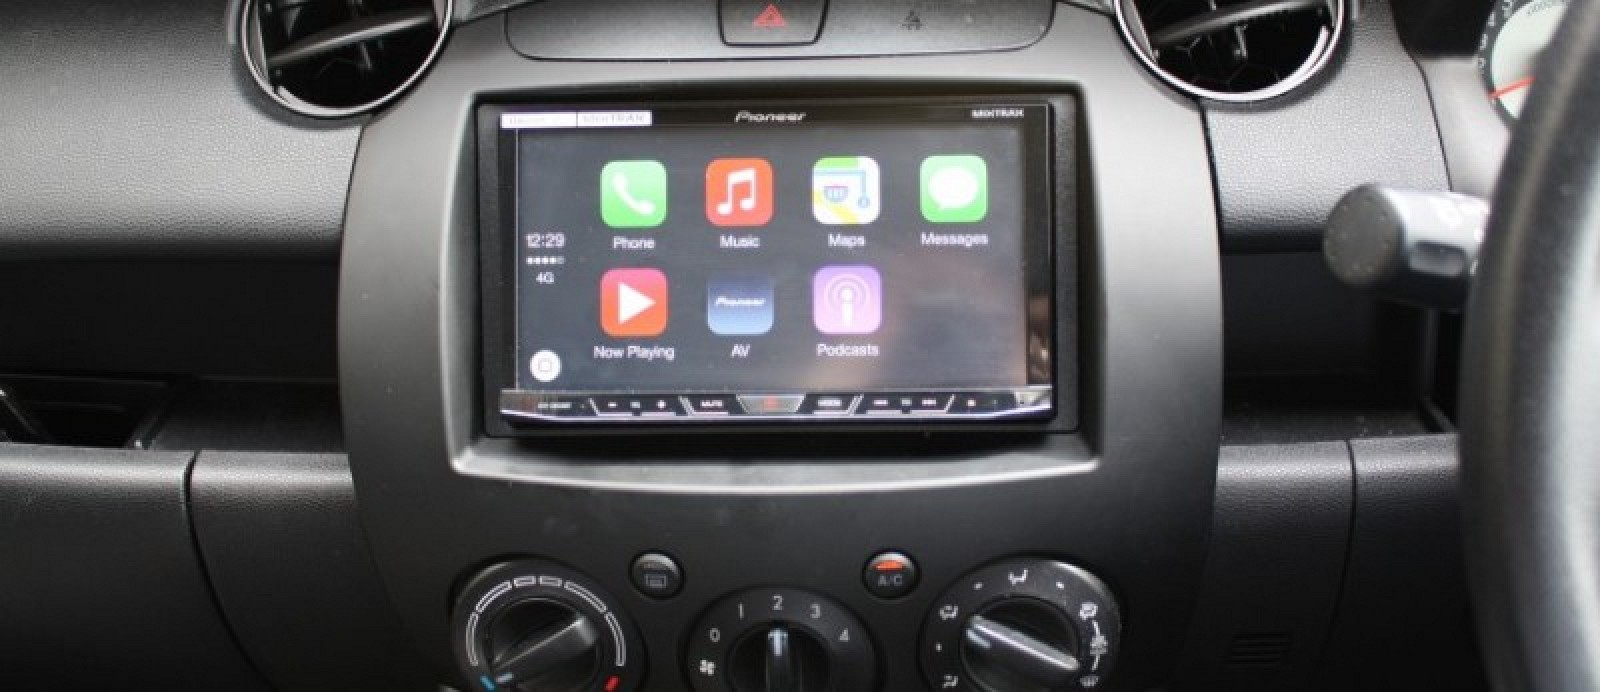 Early Apple Carplay Reviews Cite Ease Of Use Excellent